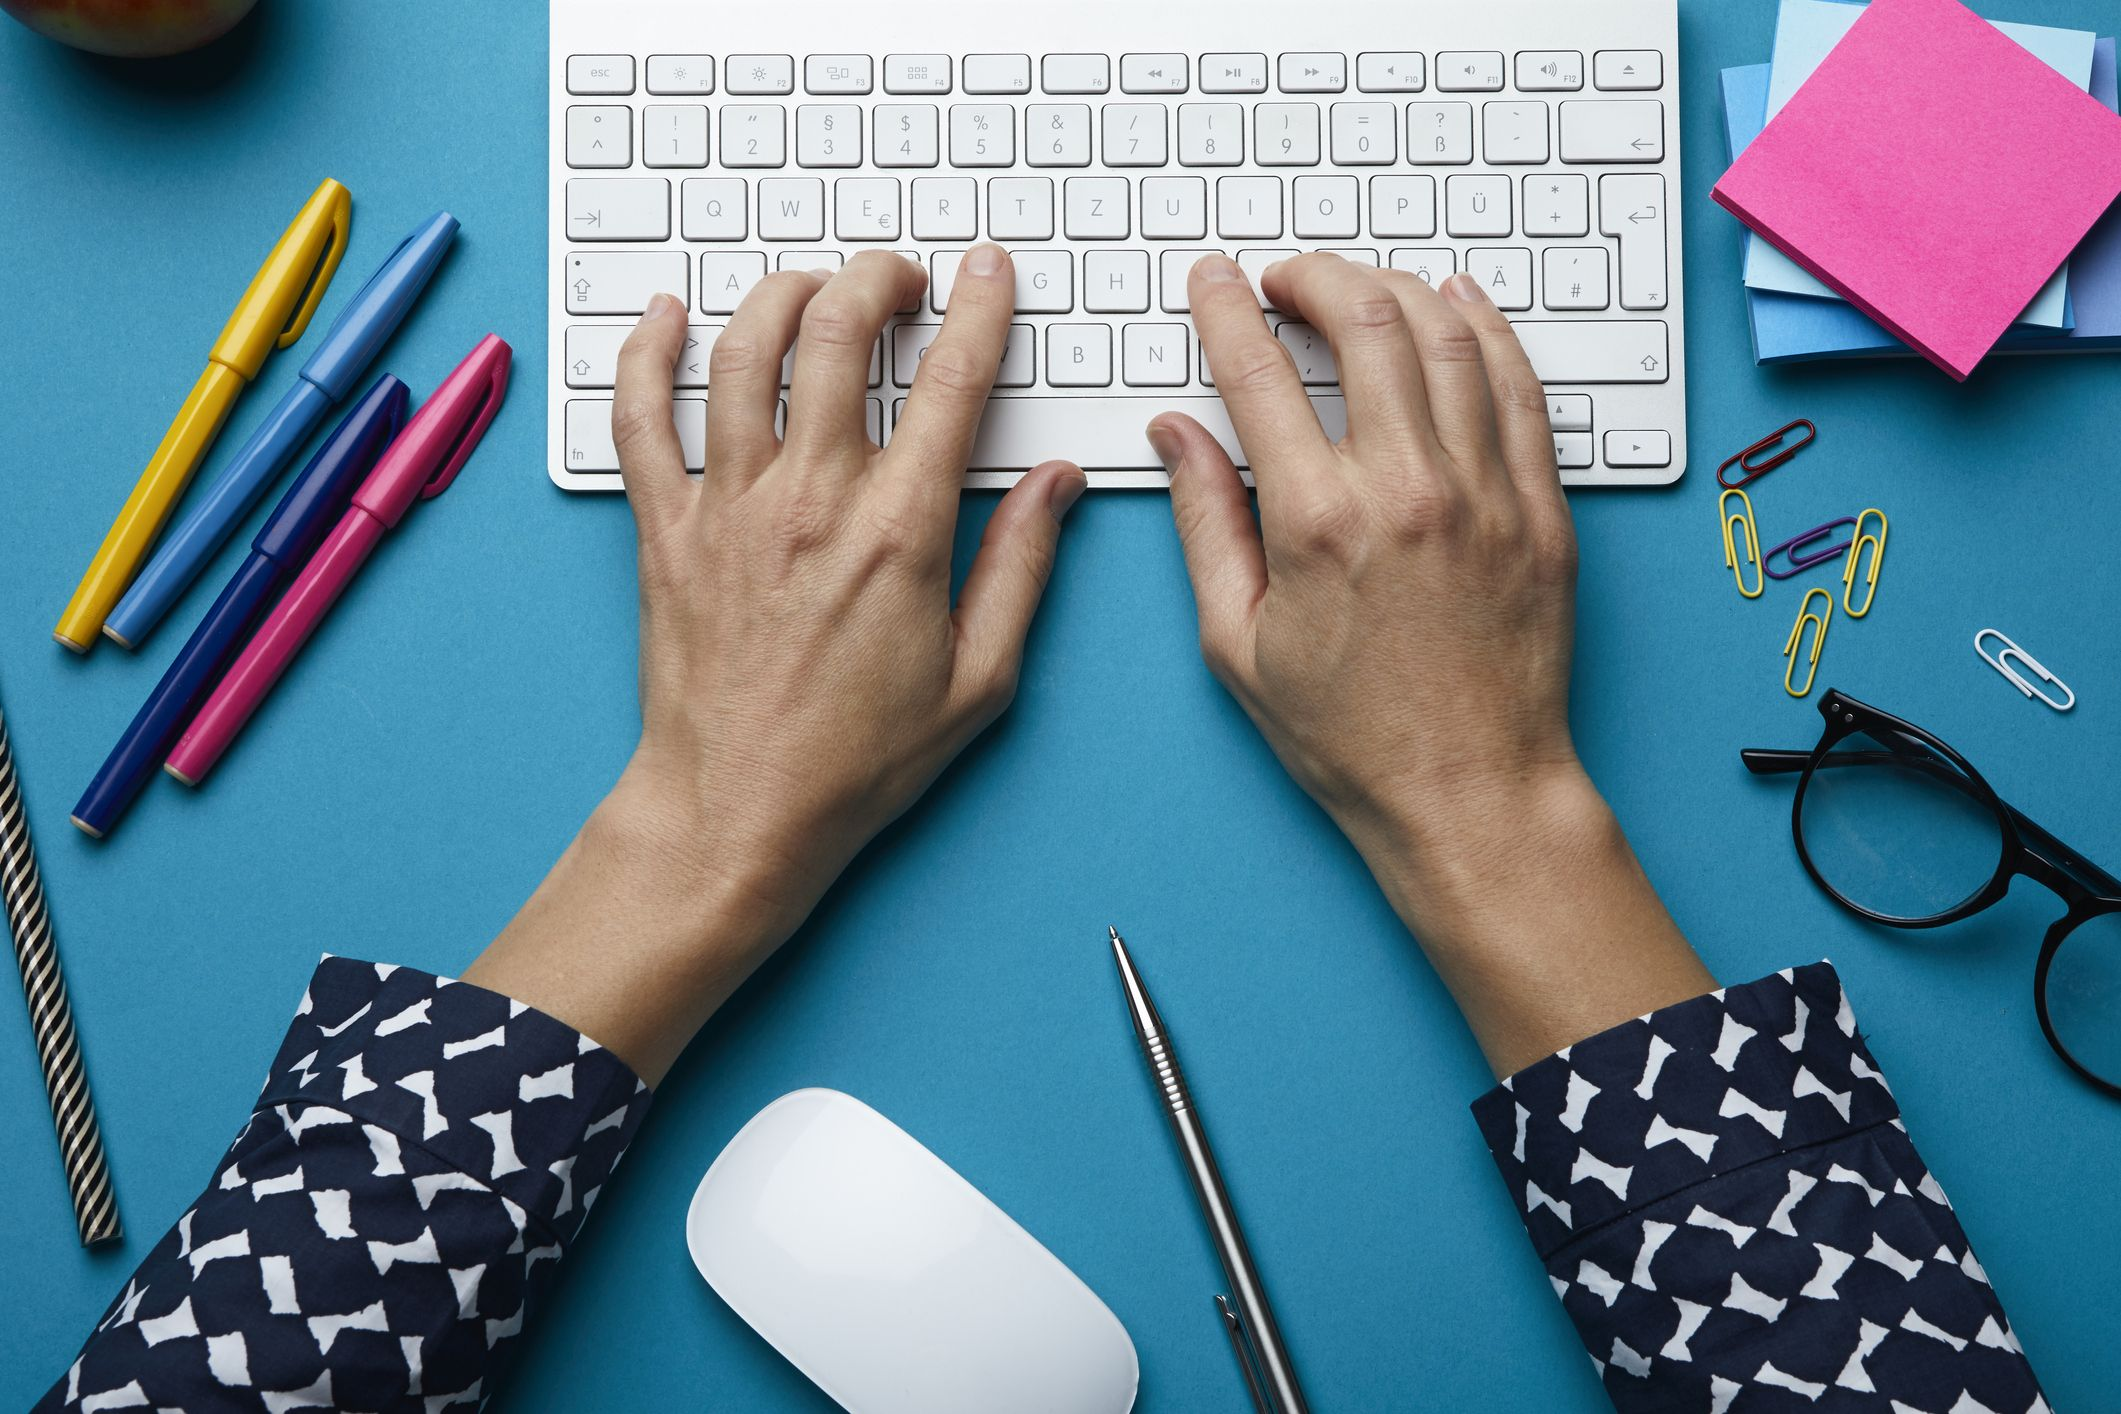 Carpal tunnel syndrome symptoms and treatment tips